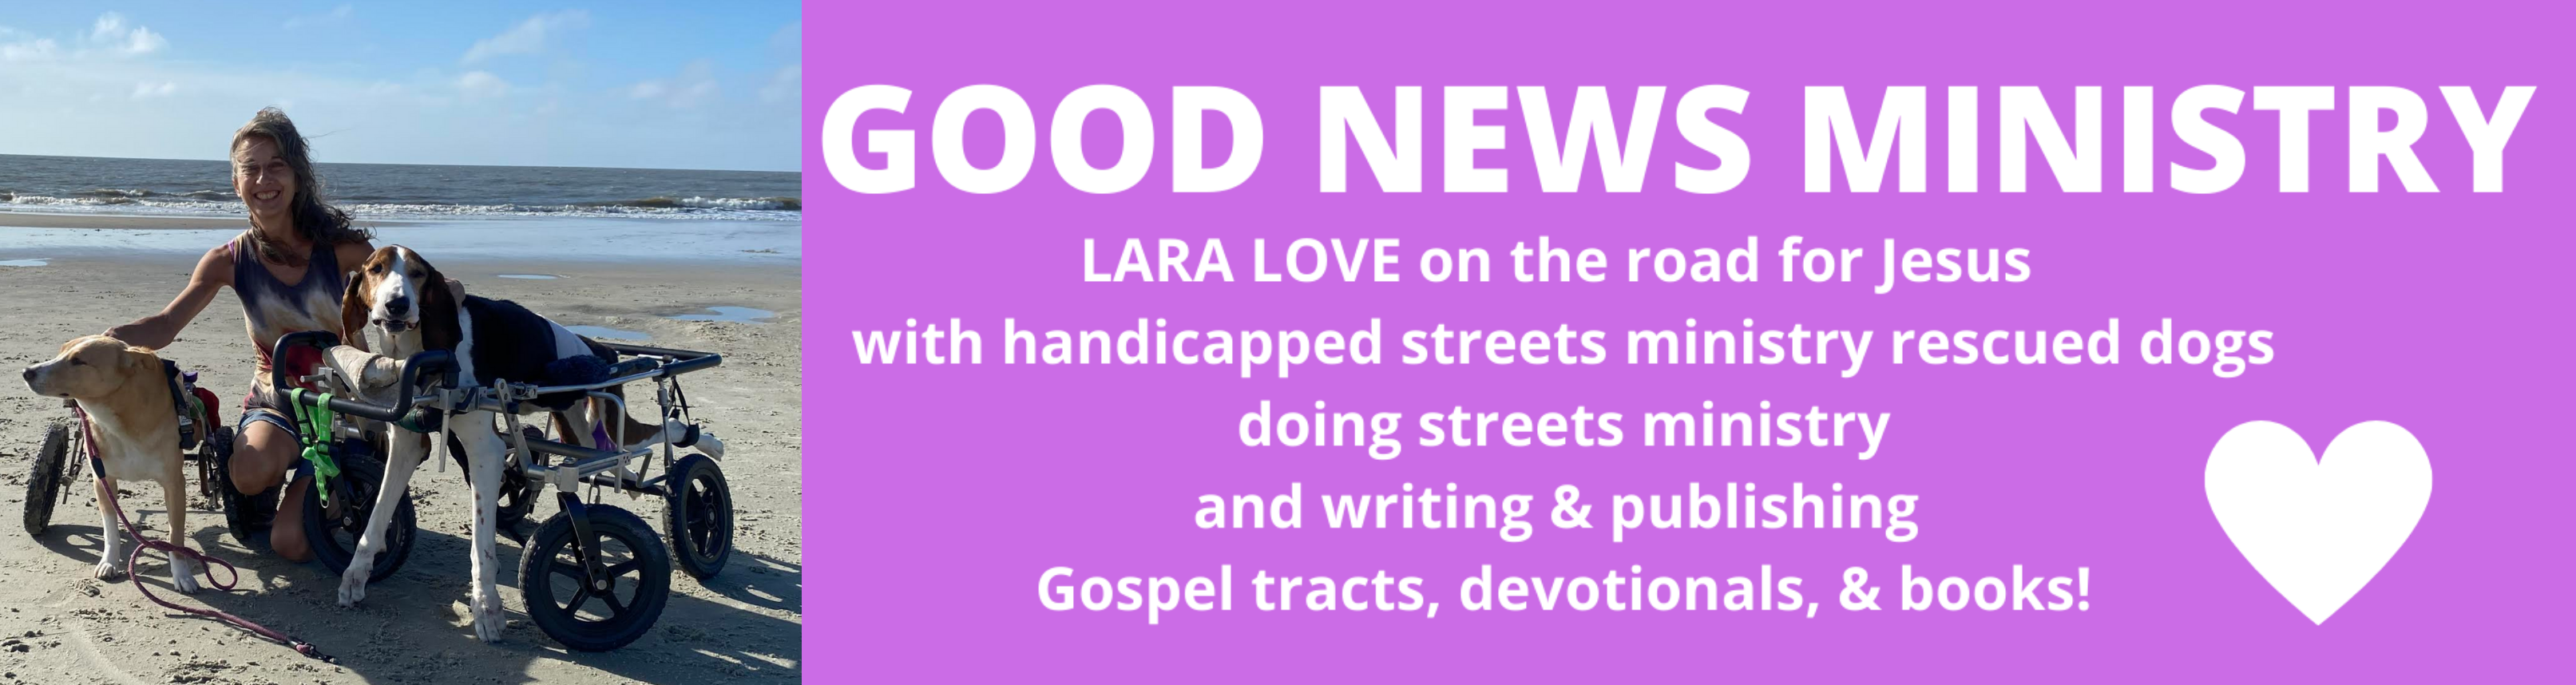 Lara Love & Good News Ministry